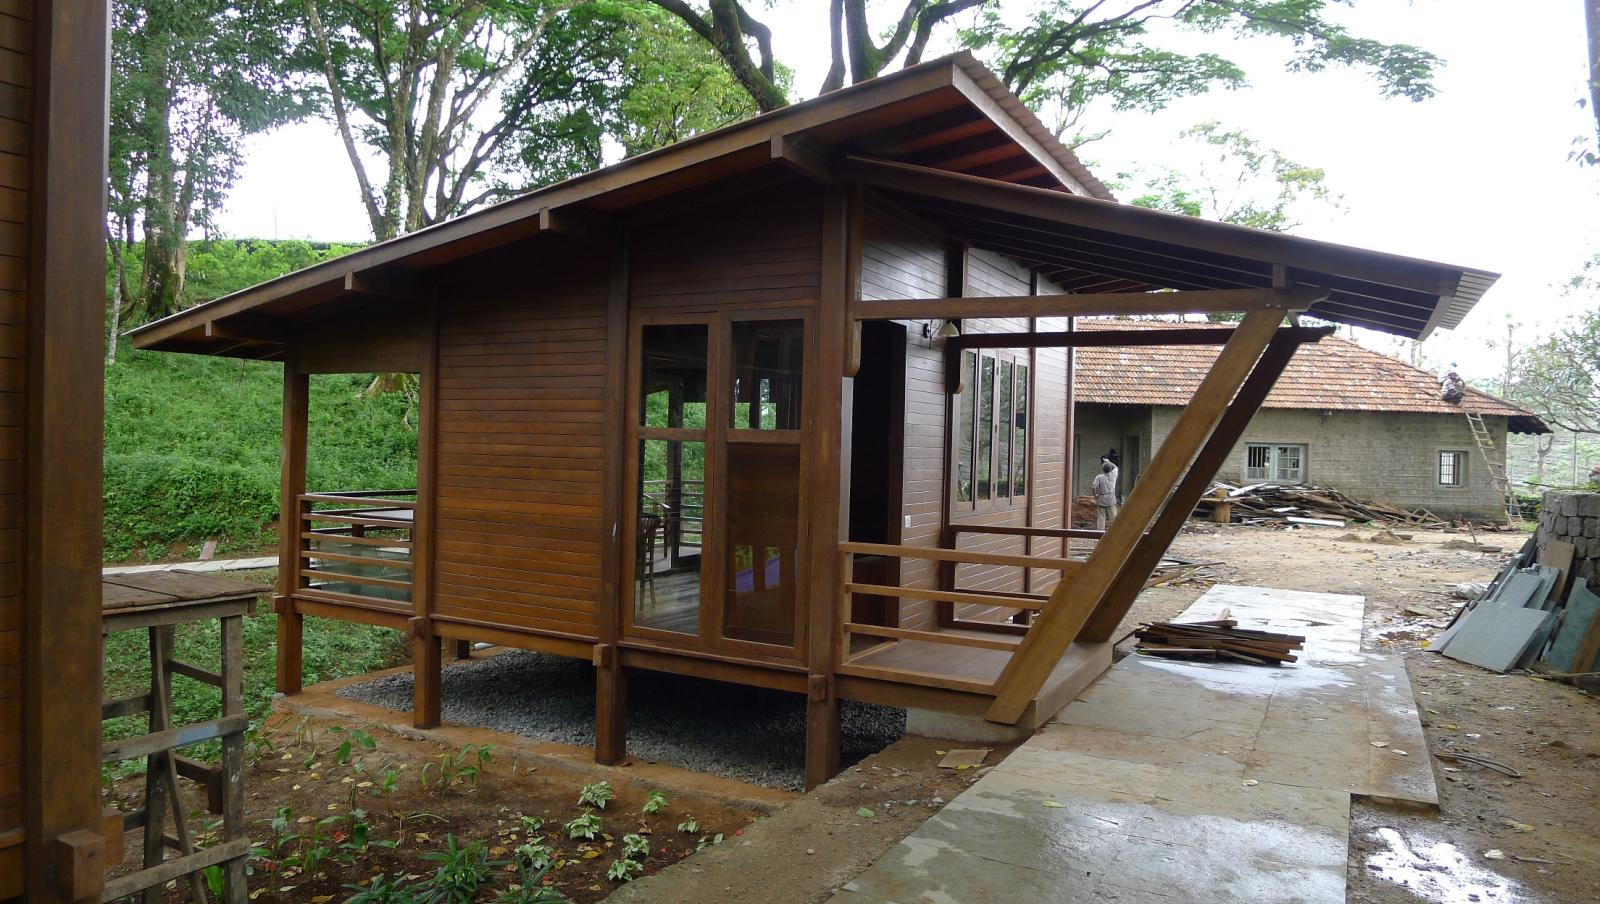 gallery tea plantation guest cabins habitats plus small house published september 17 2014 at 1600 904 in tea plantation guest cabins